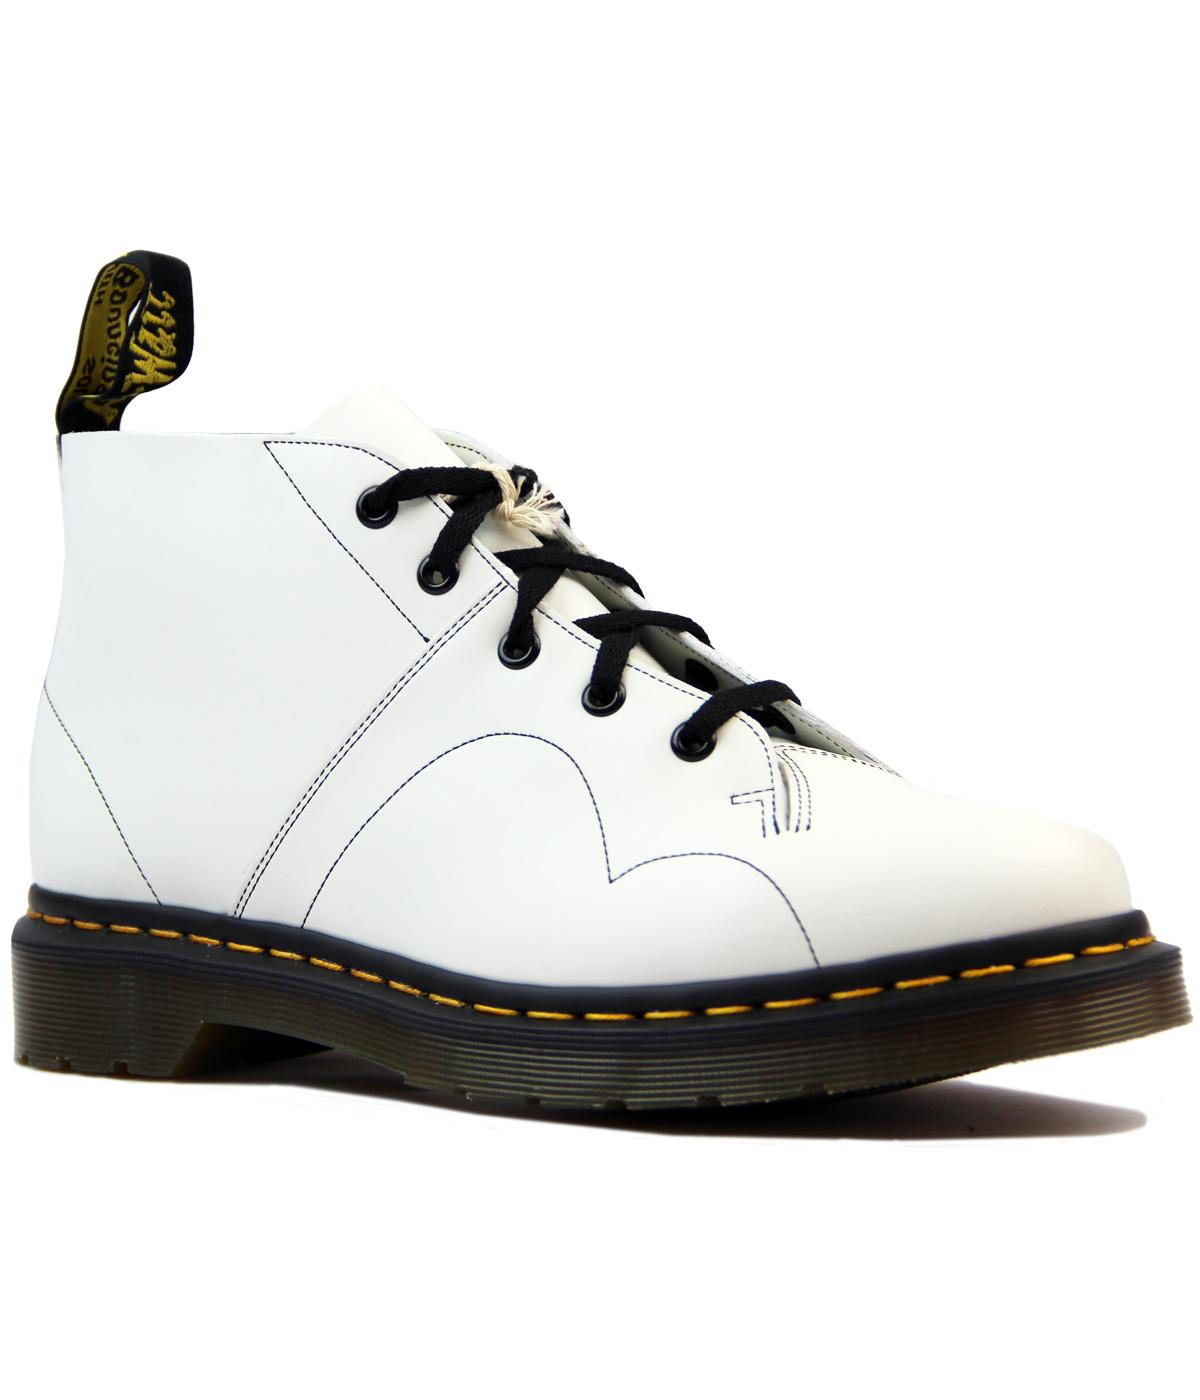 409bb25febd8c Dr Martens Church Retro Mod Smooth Leather Monkey Boots White